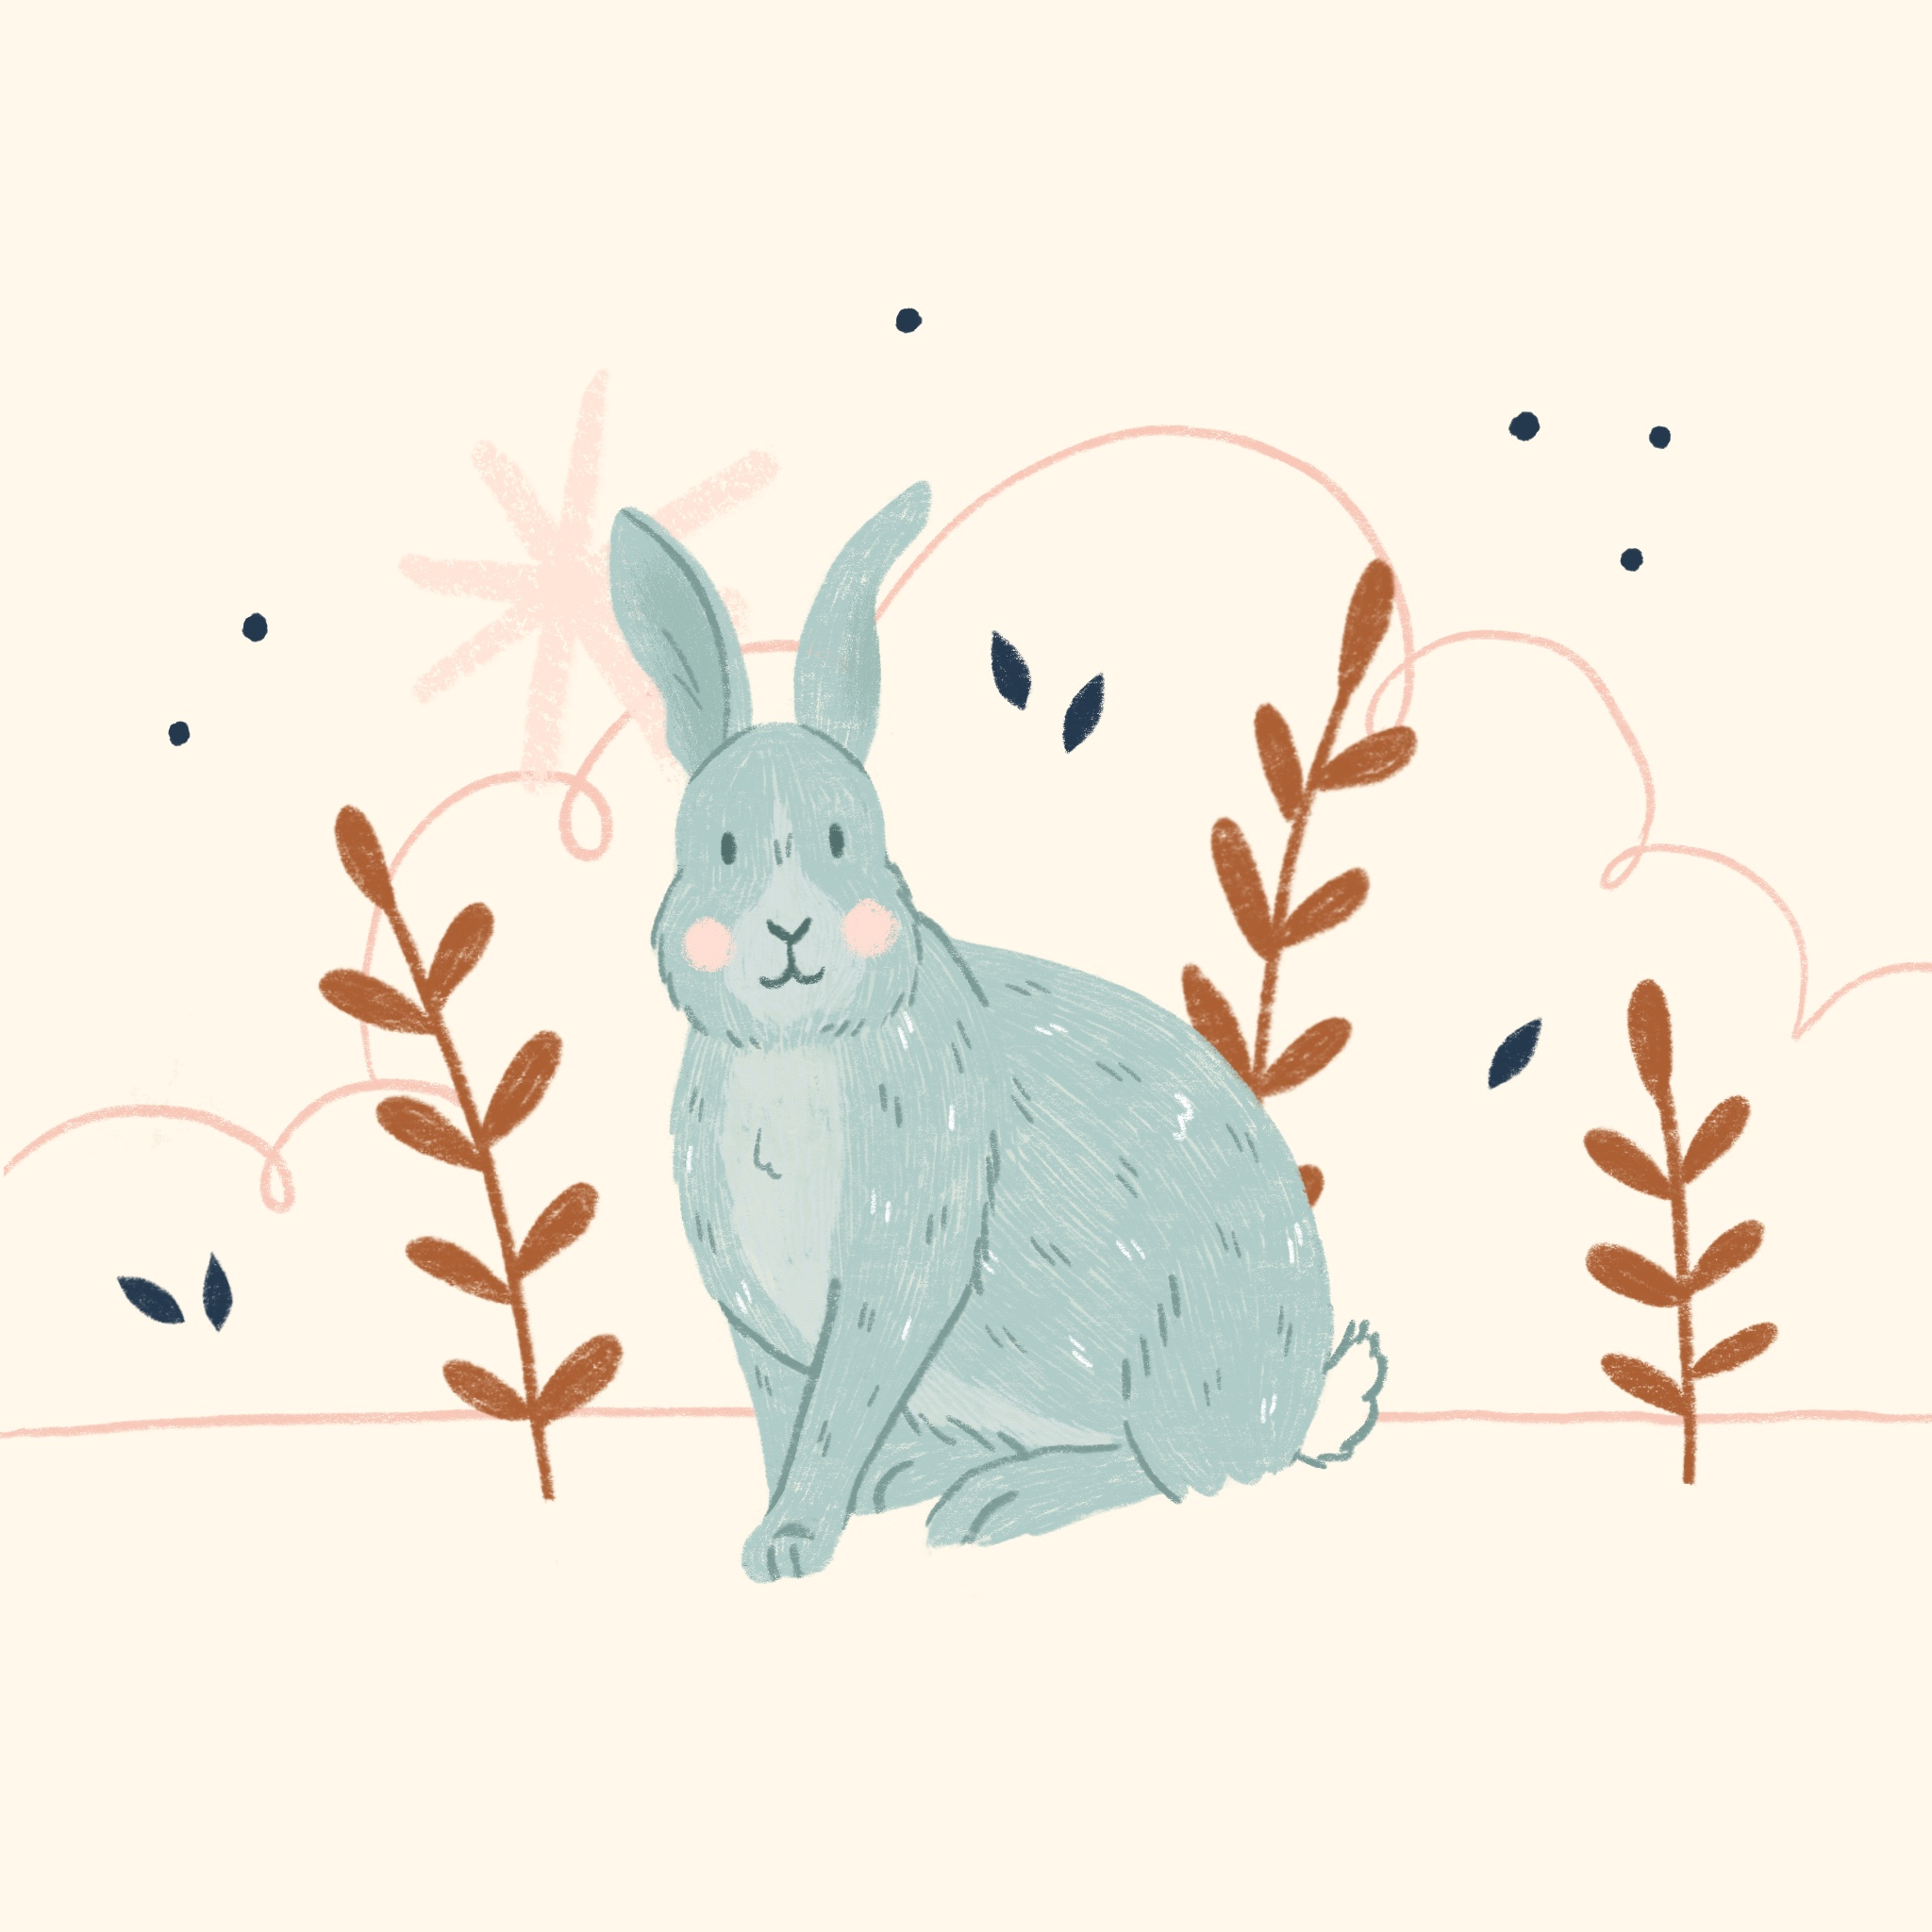 An illustration of a rabbit standing in front of some leaves and bushes